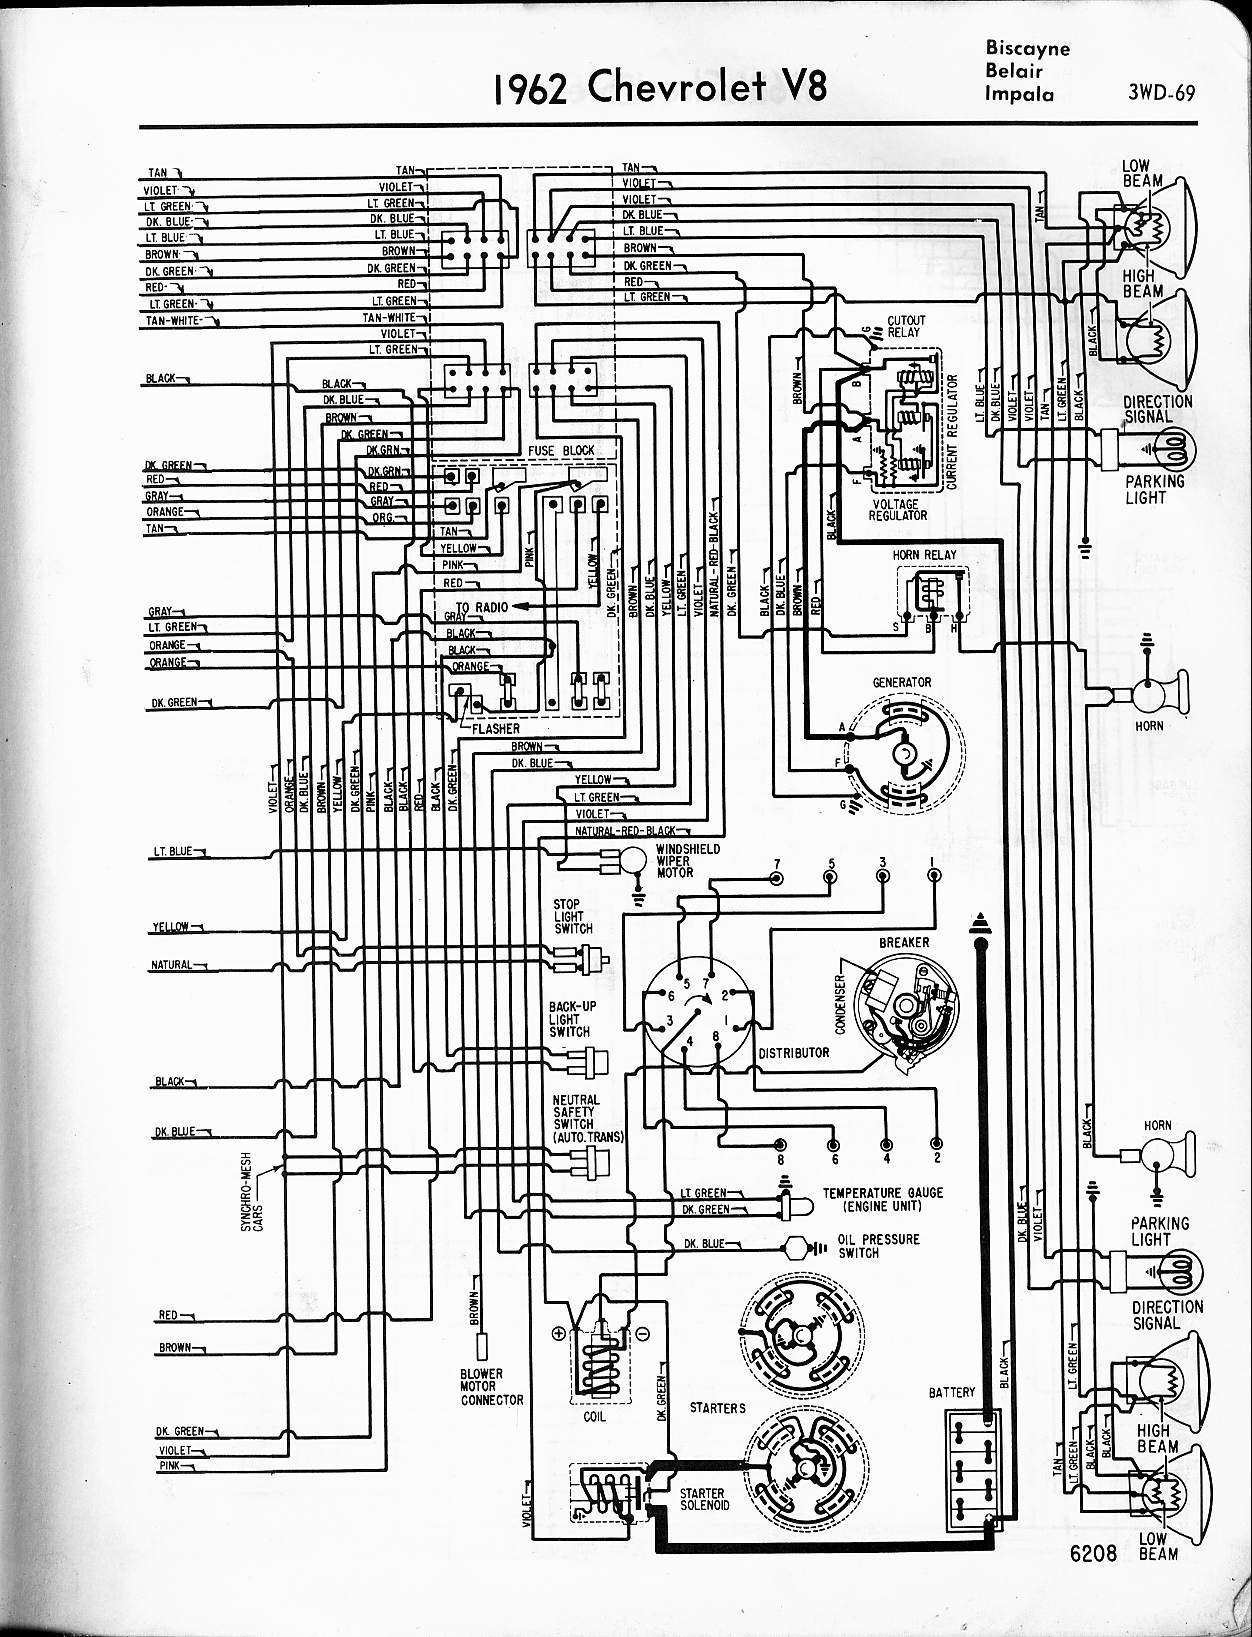 1964 chevrolet truck wiring diagrams 97 honda accord engine diagram 57 - 65 chevy